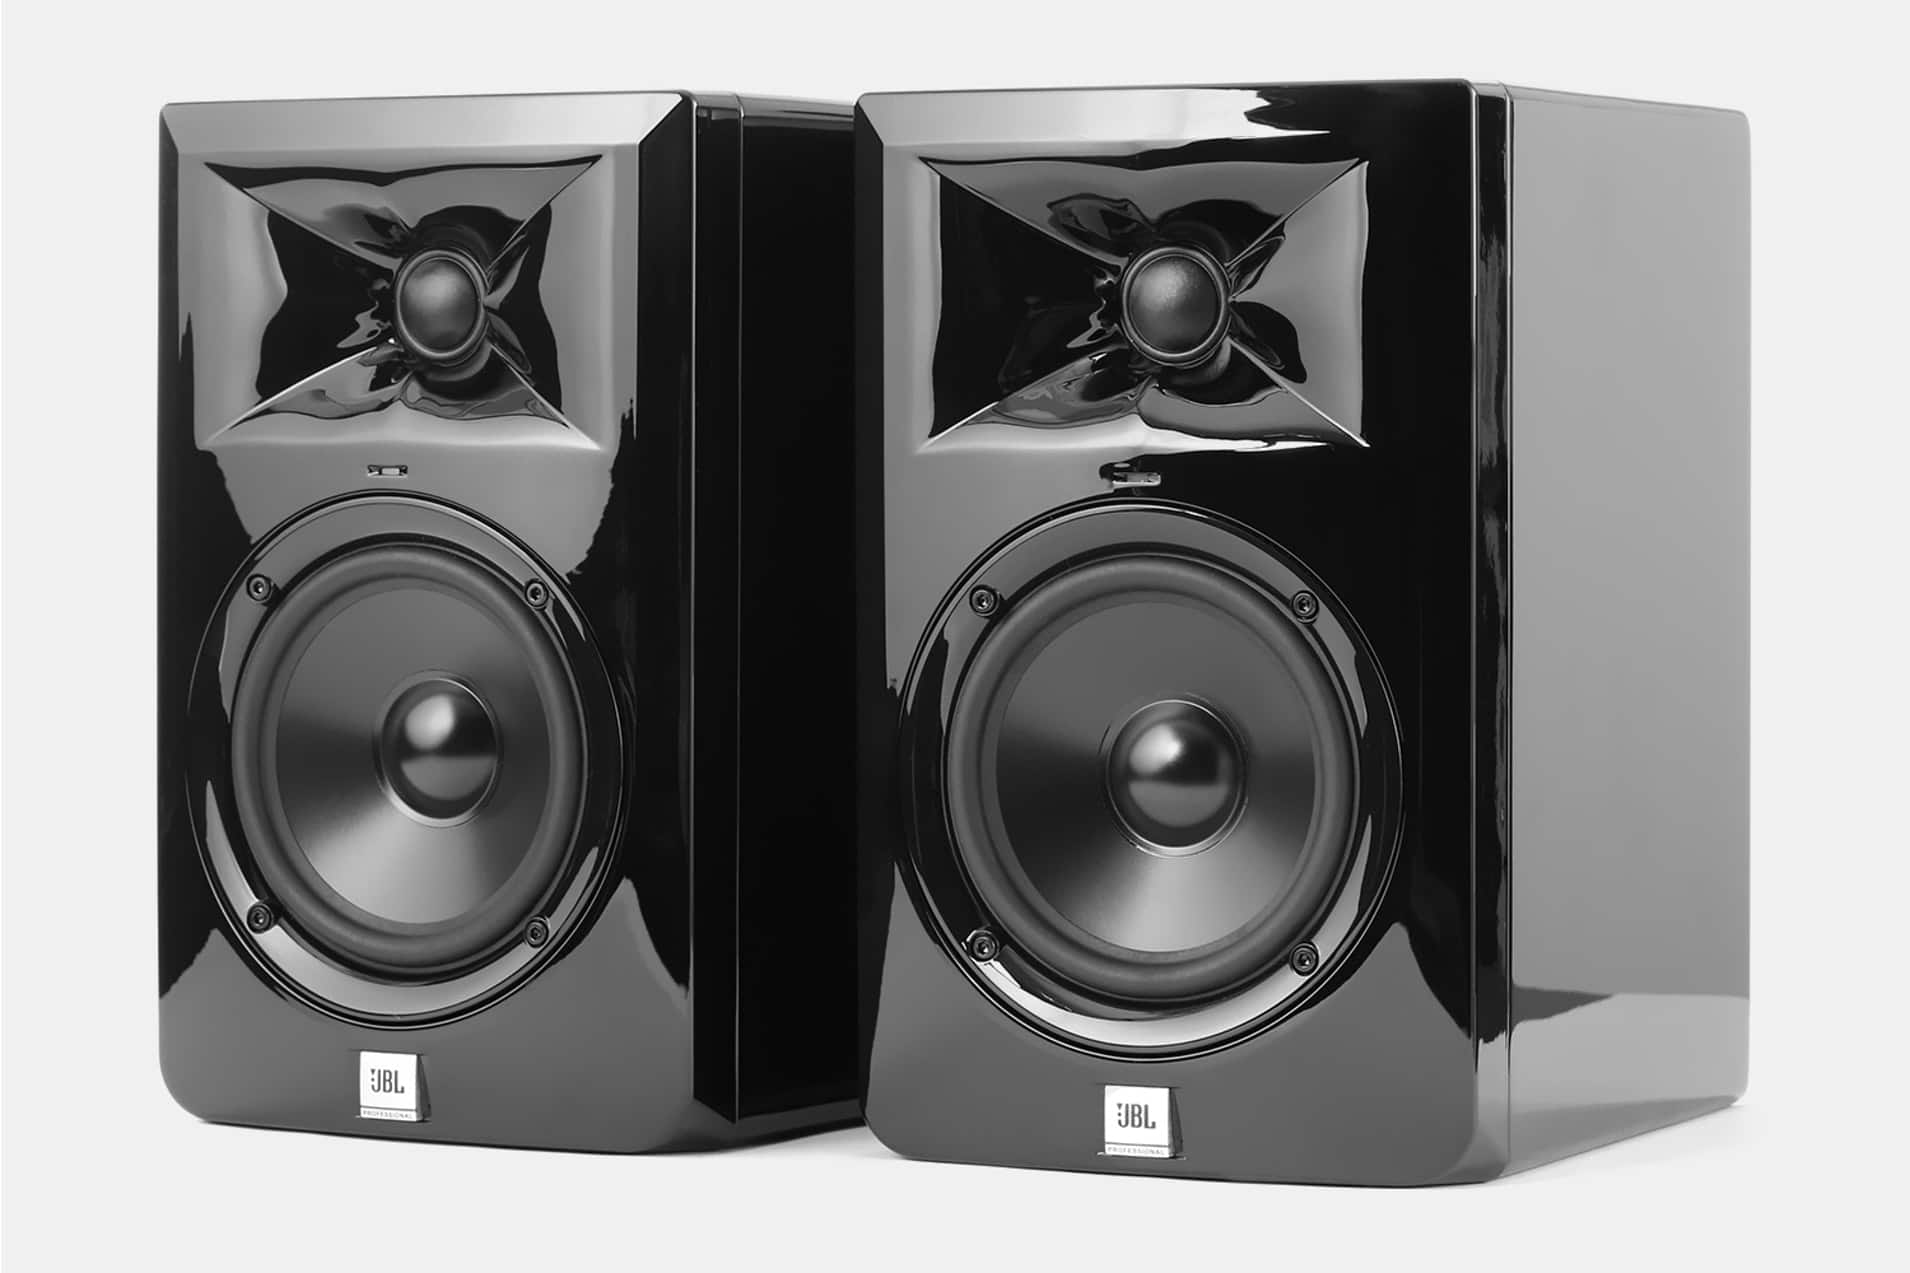 Massdrop x JBL LSR30X Powered Speakers (Pair) $179.99